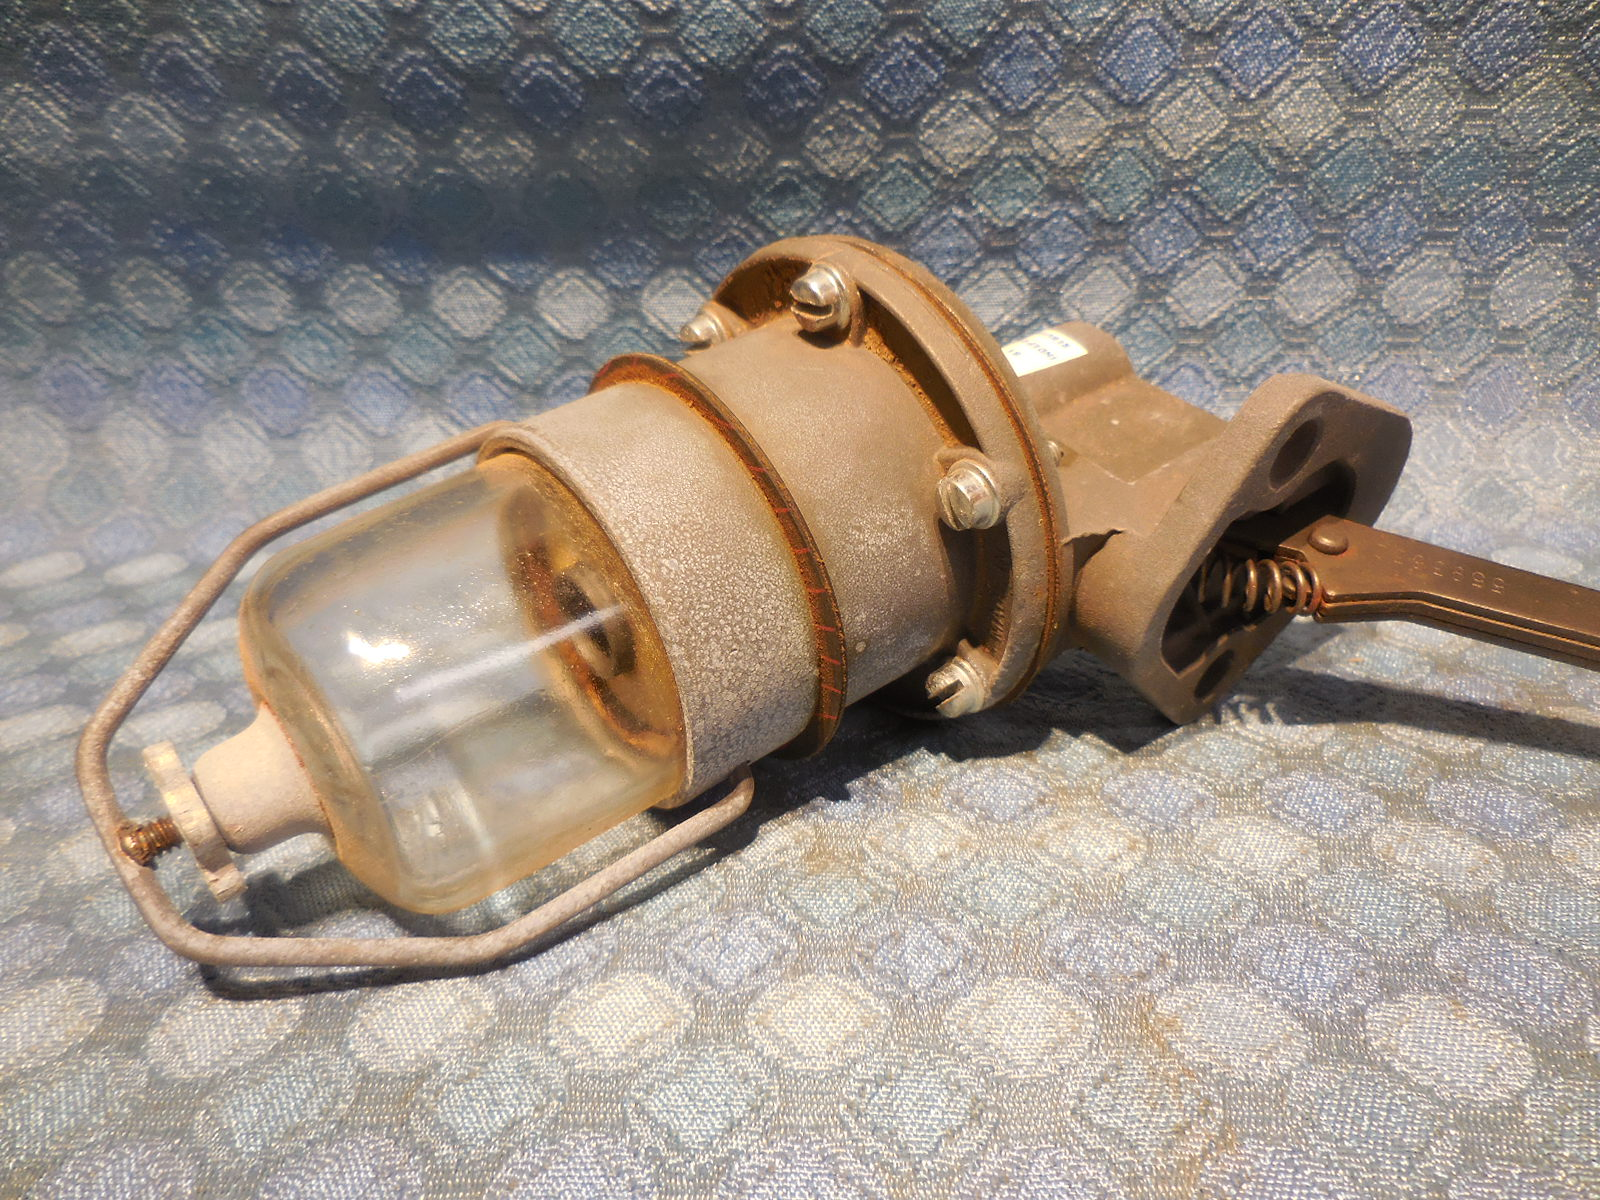 1955 Ford Truck 256 V8 Nors Fuel Pump W Glass Bowl Filter 4210